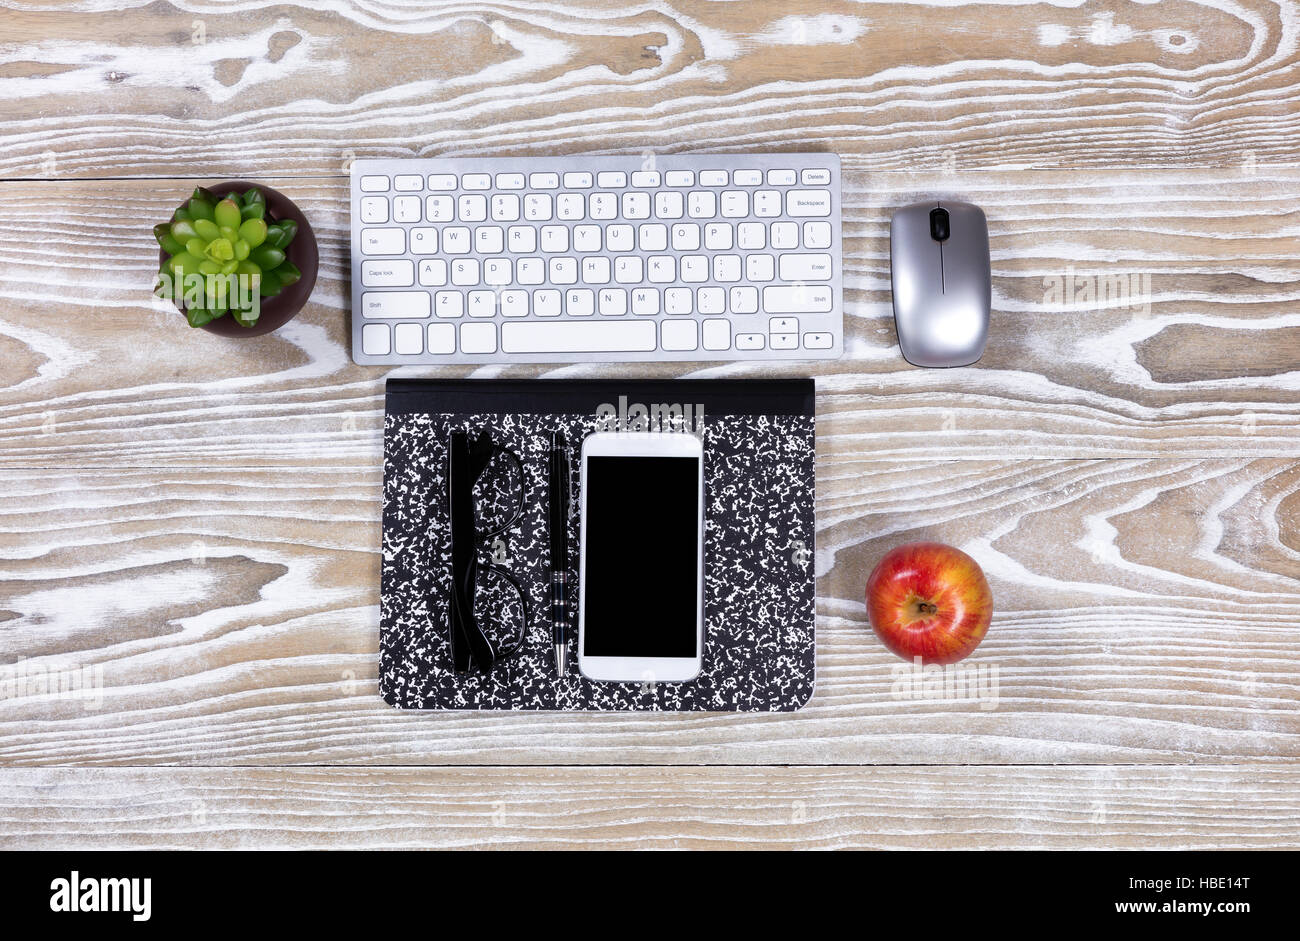 Fading desktop with stationery and technology - Stock Image